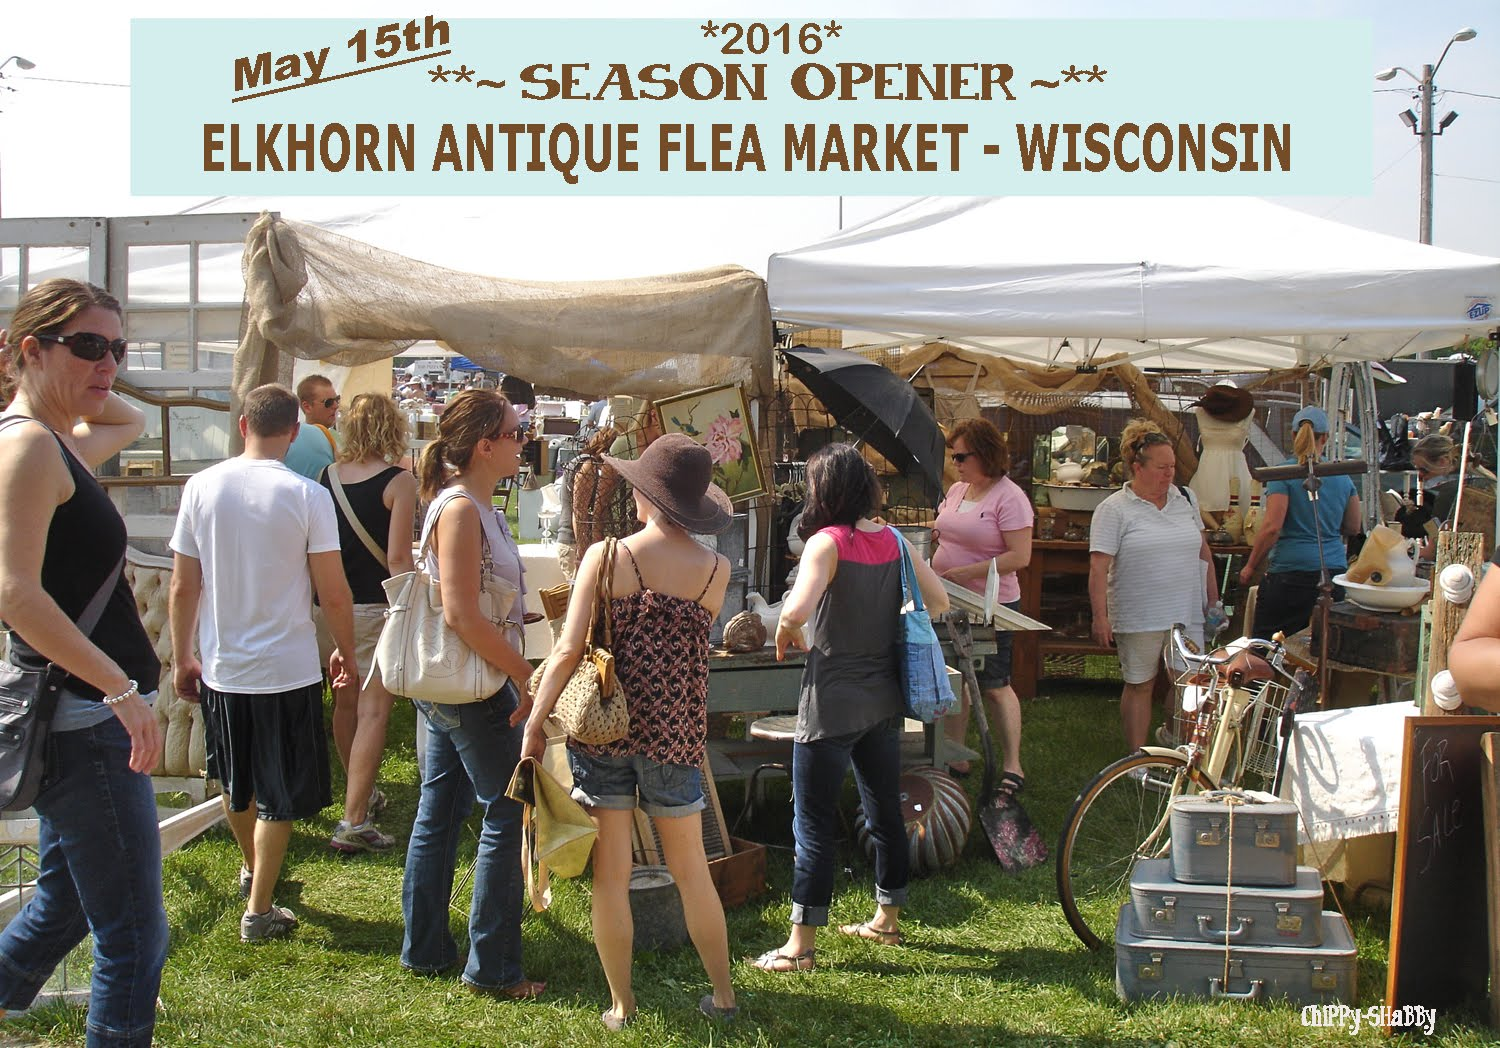 ELKHORN ANTIQUE FLEA MARKET - WISCONSIN